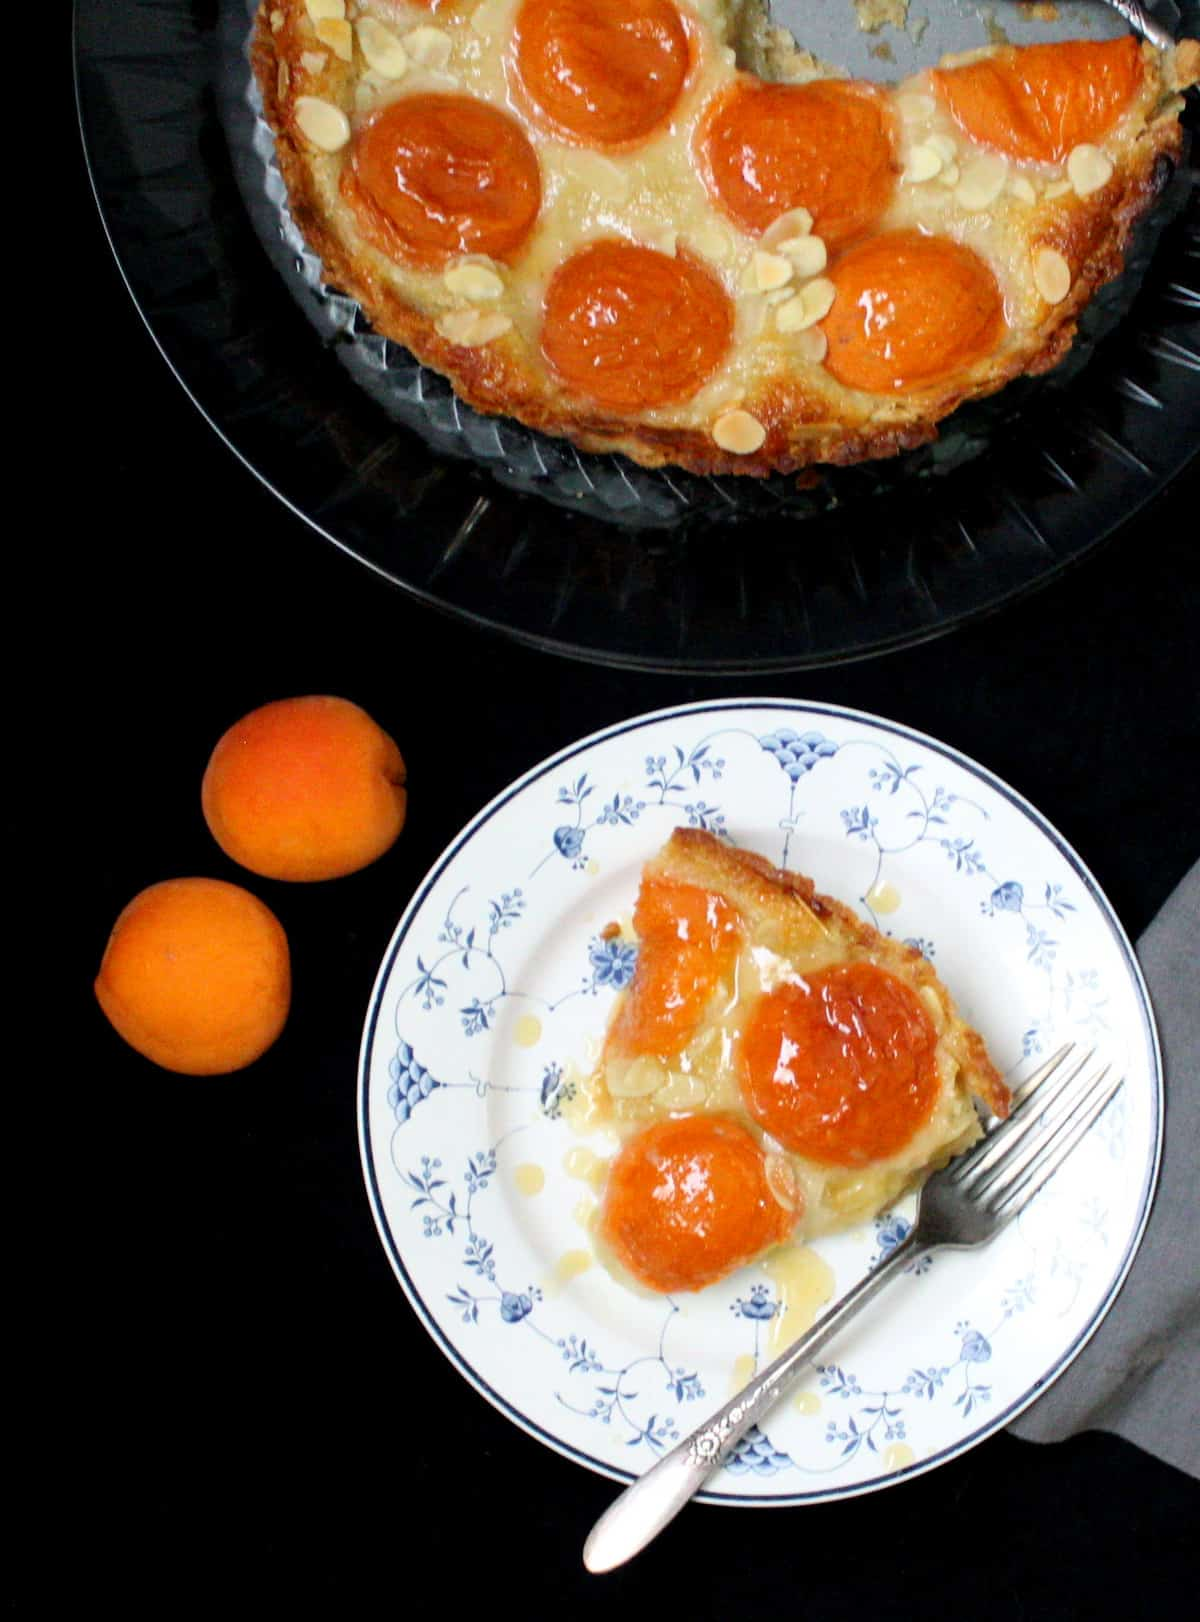 An overhead shot of a slice of vegan apricot frangipane tart with fresh apricot halves in a blue and white plate, standing next to the full tart on a glass stand.